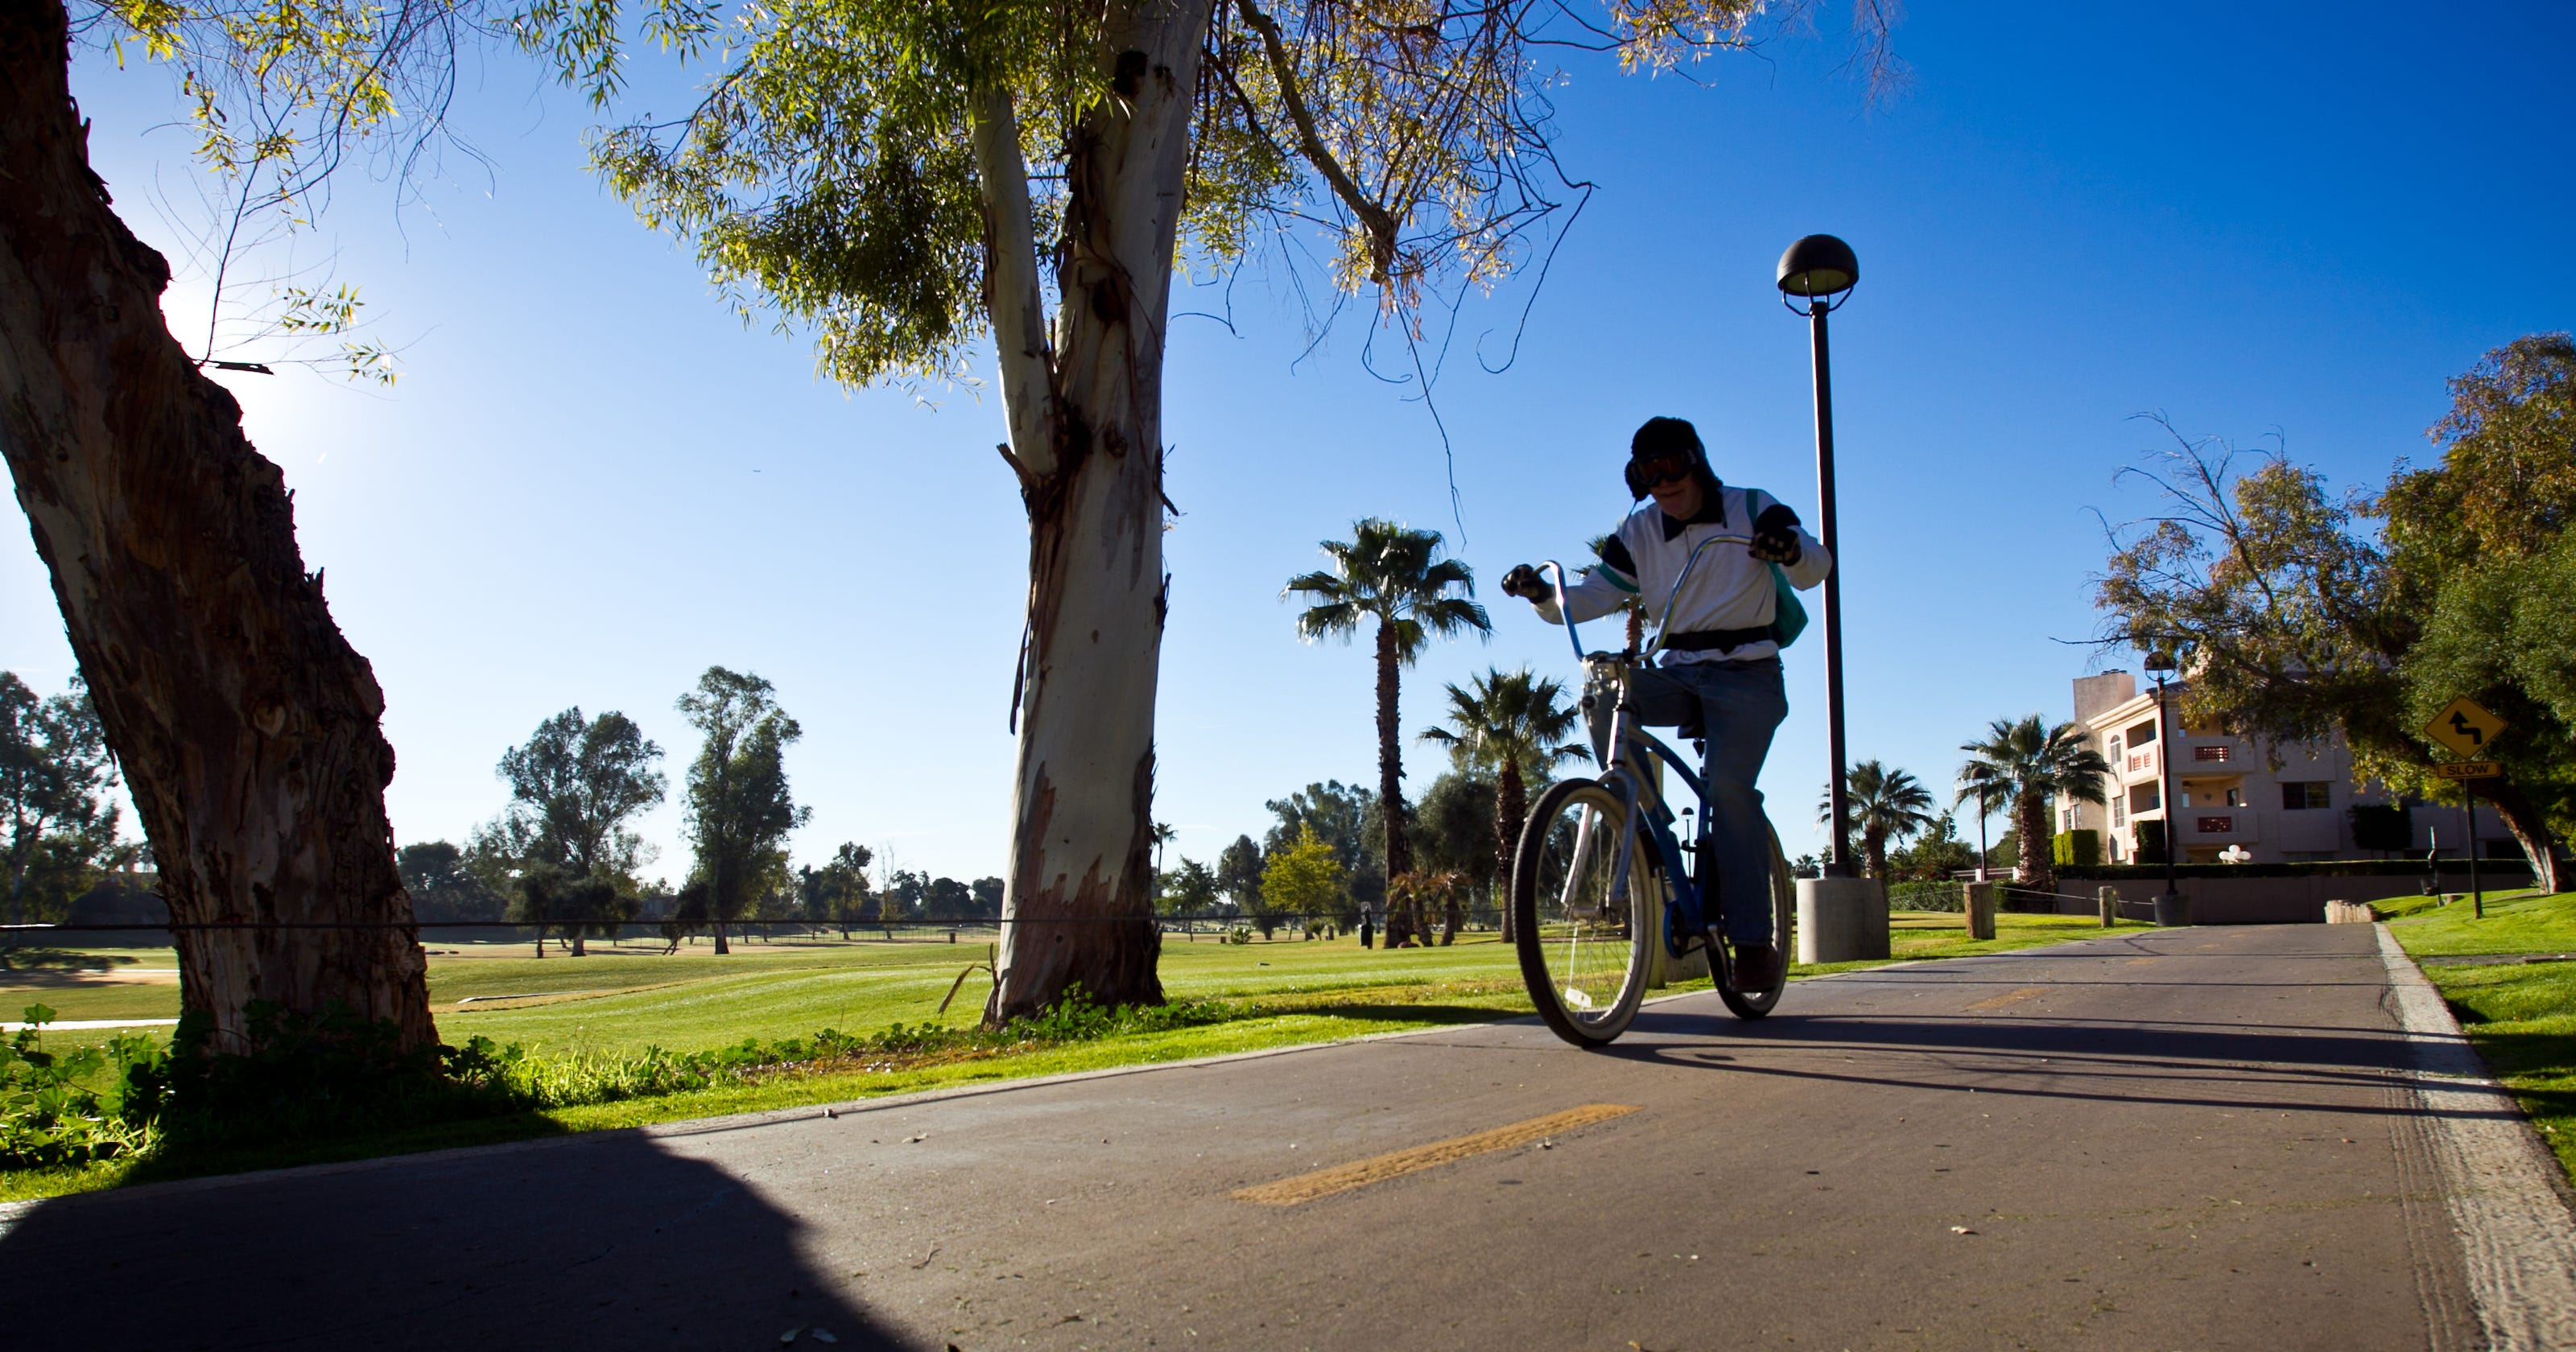 Scottsdale's best biking paths on boise river greenbelt bike map, scottsdale bike routes, trail map, scottsdale az bike path map, greenbelt 3 map, flagstaff az zip code map, scottsdale bicycle map,